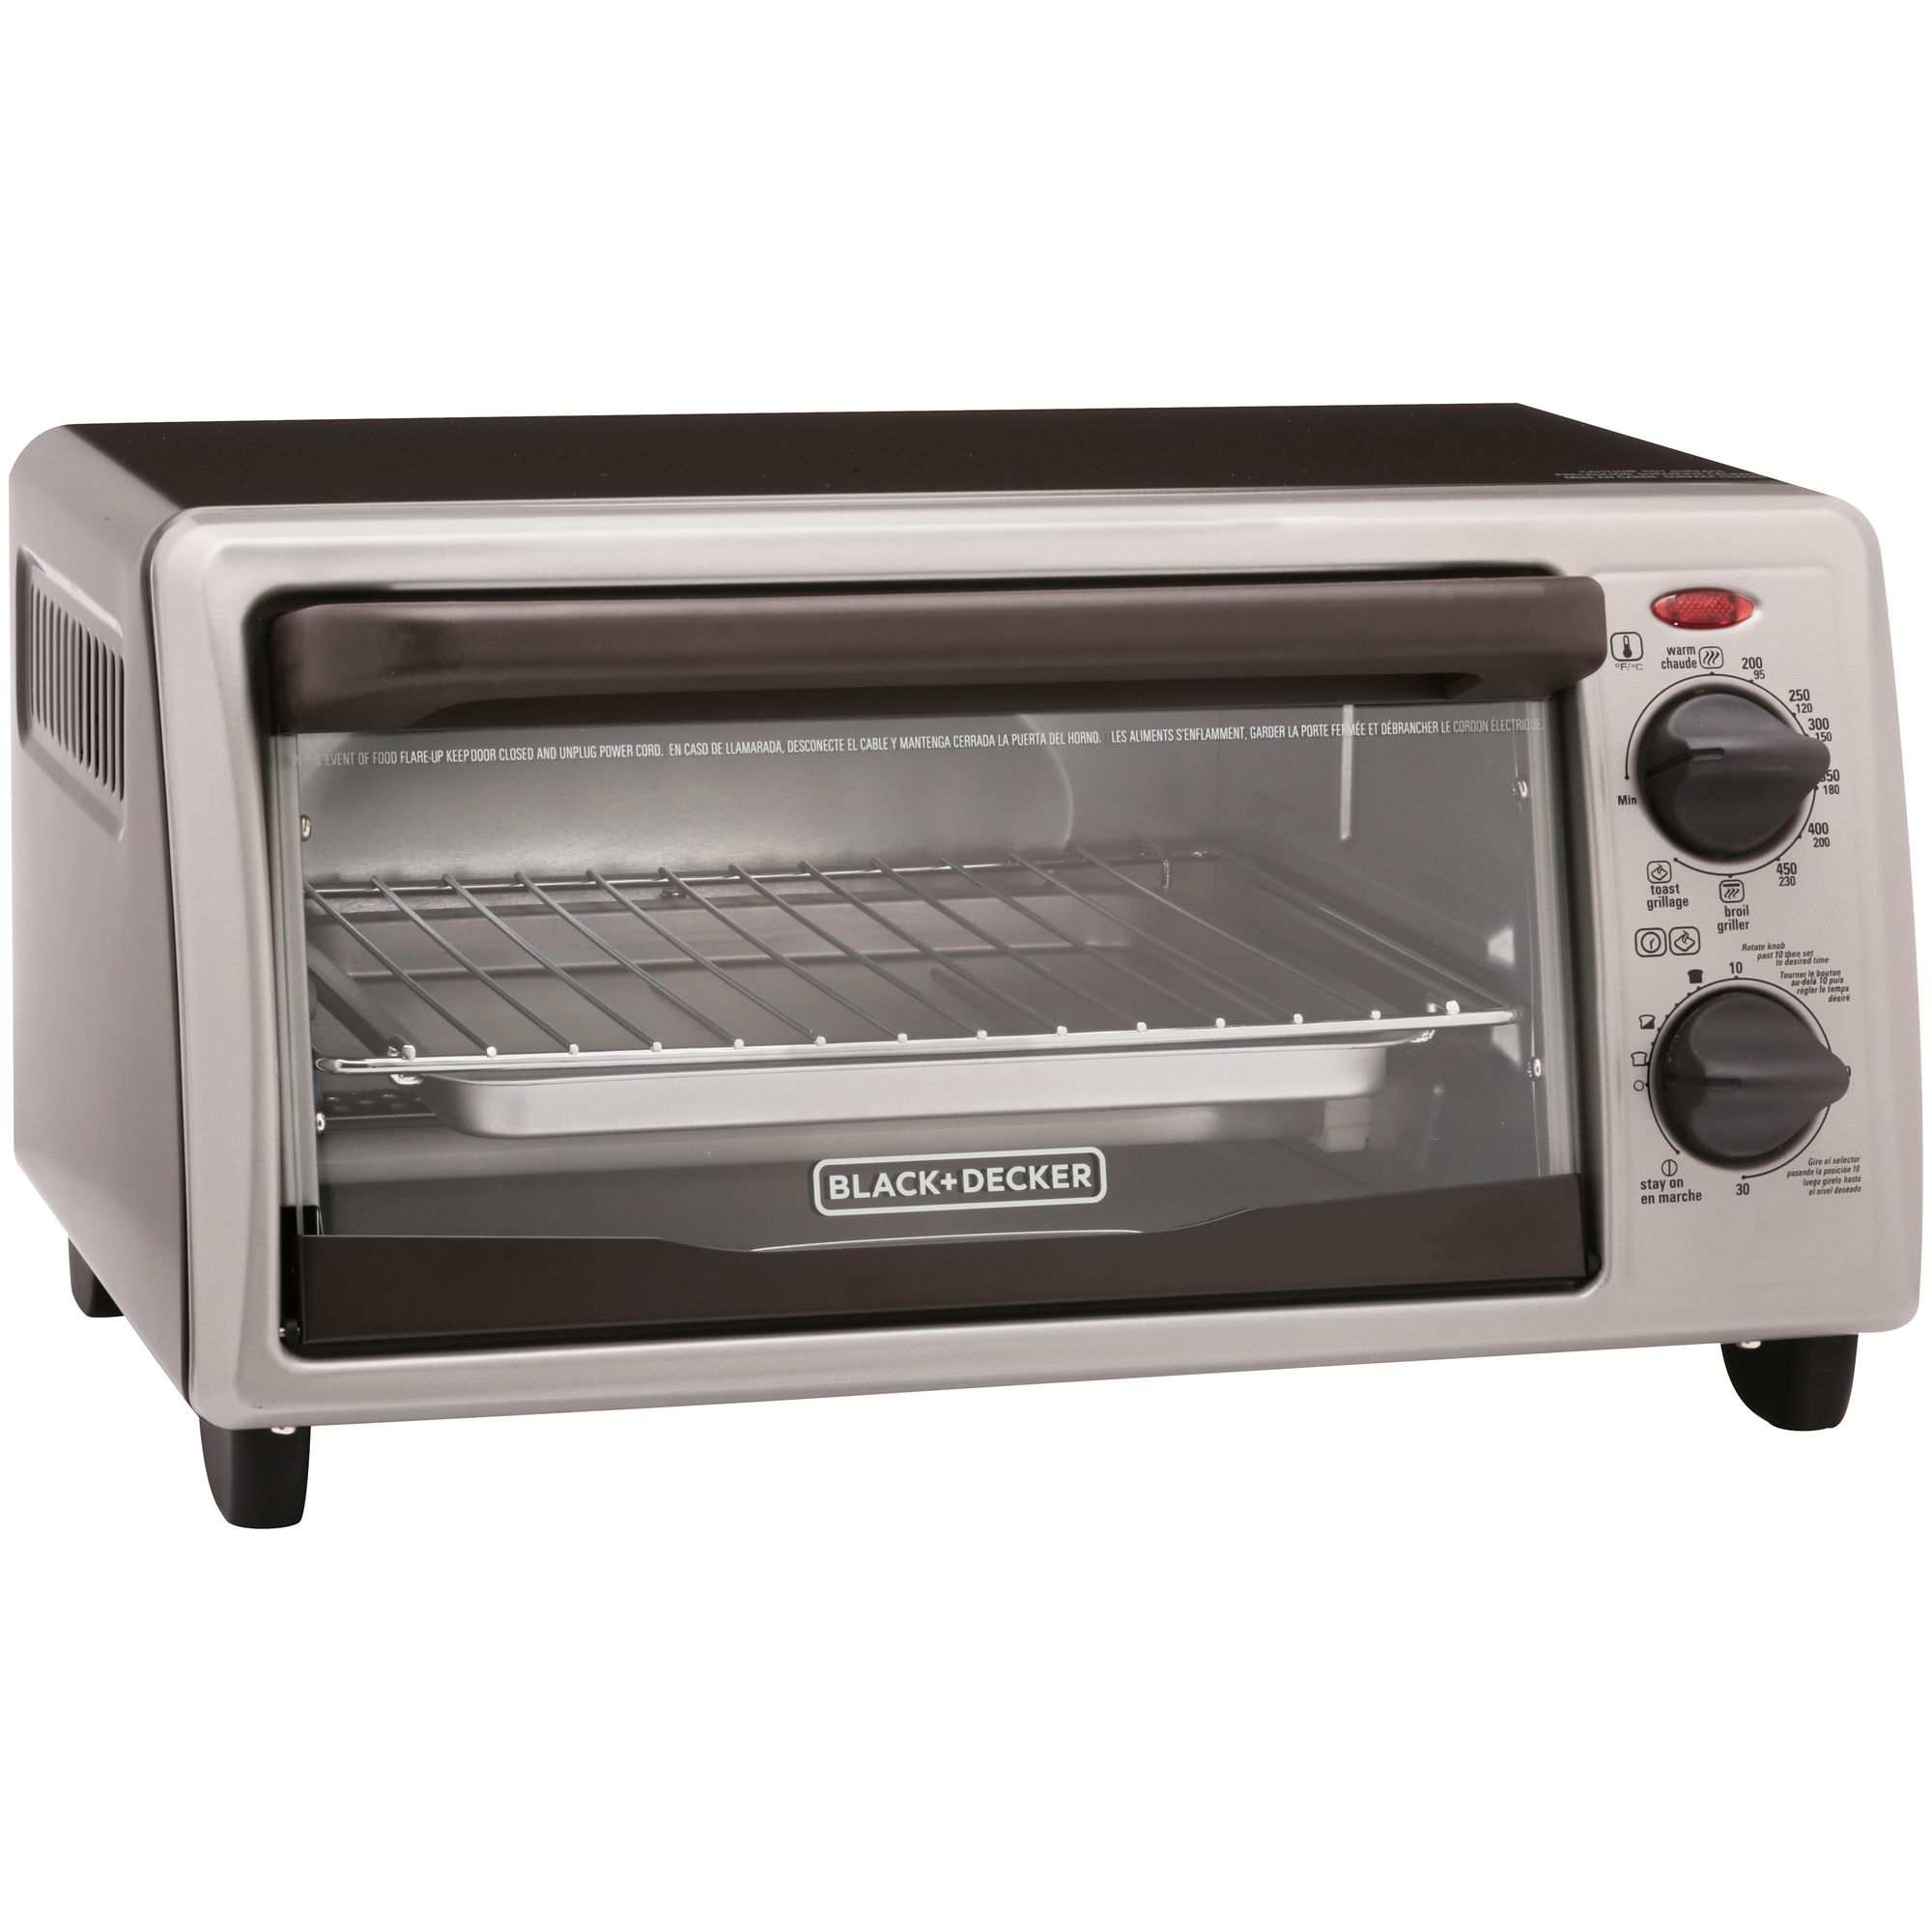 Black+Decker™ 4-Slice Toaster Oven